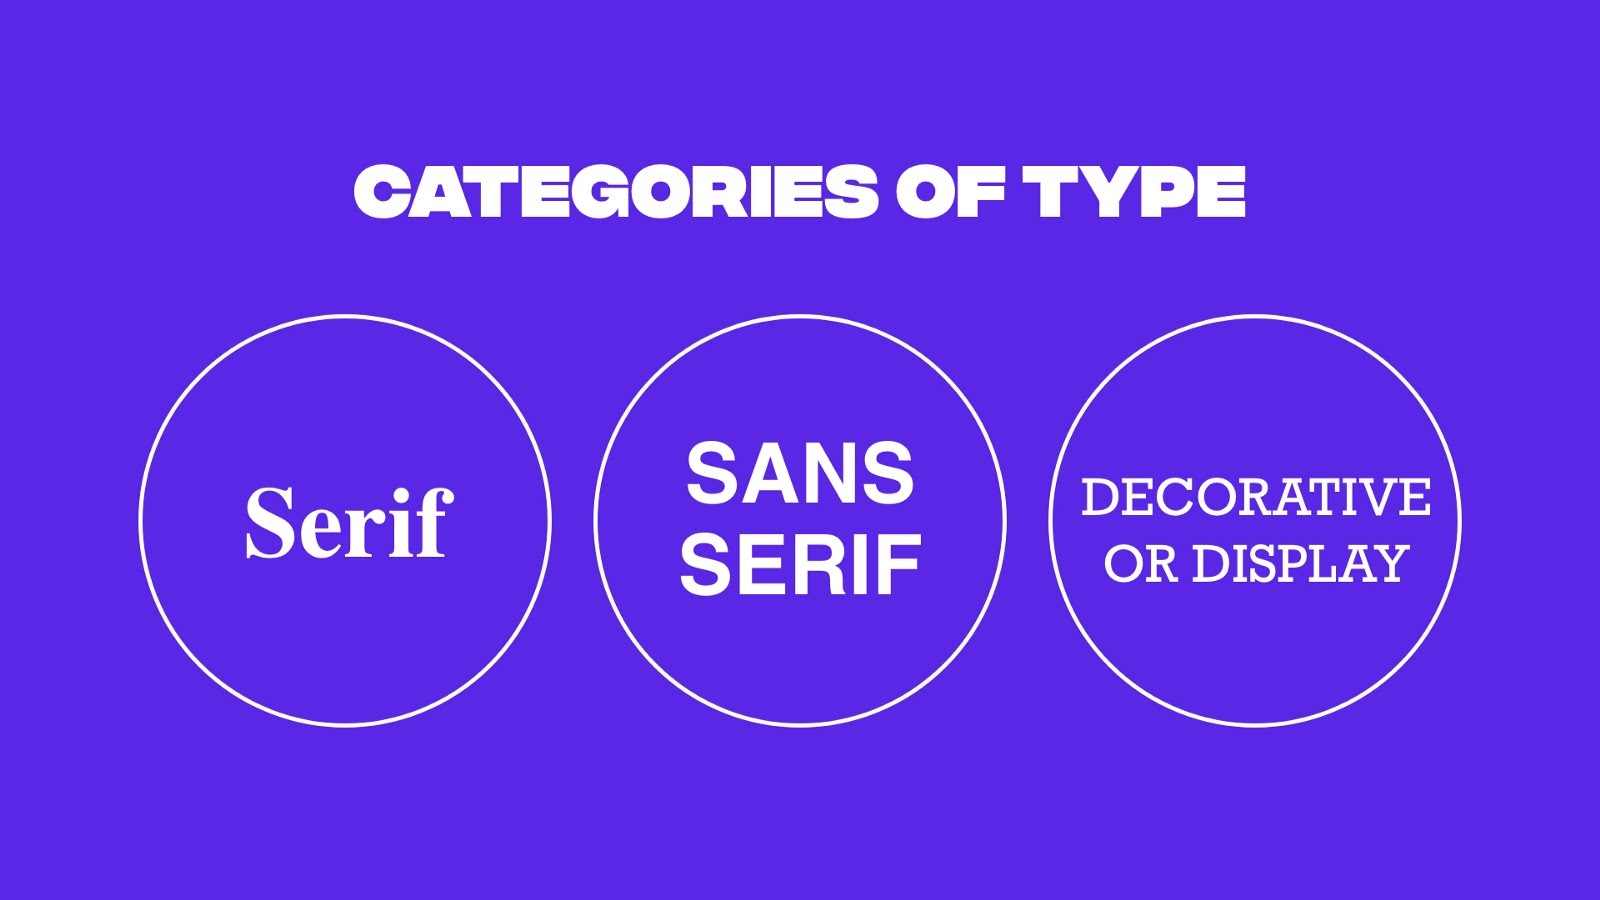 Categories of type: Serif, Sans Serif, and Decorative or Display